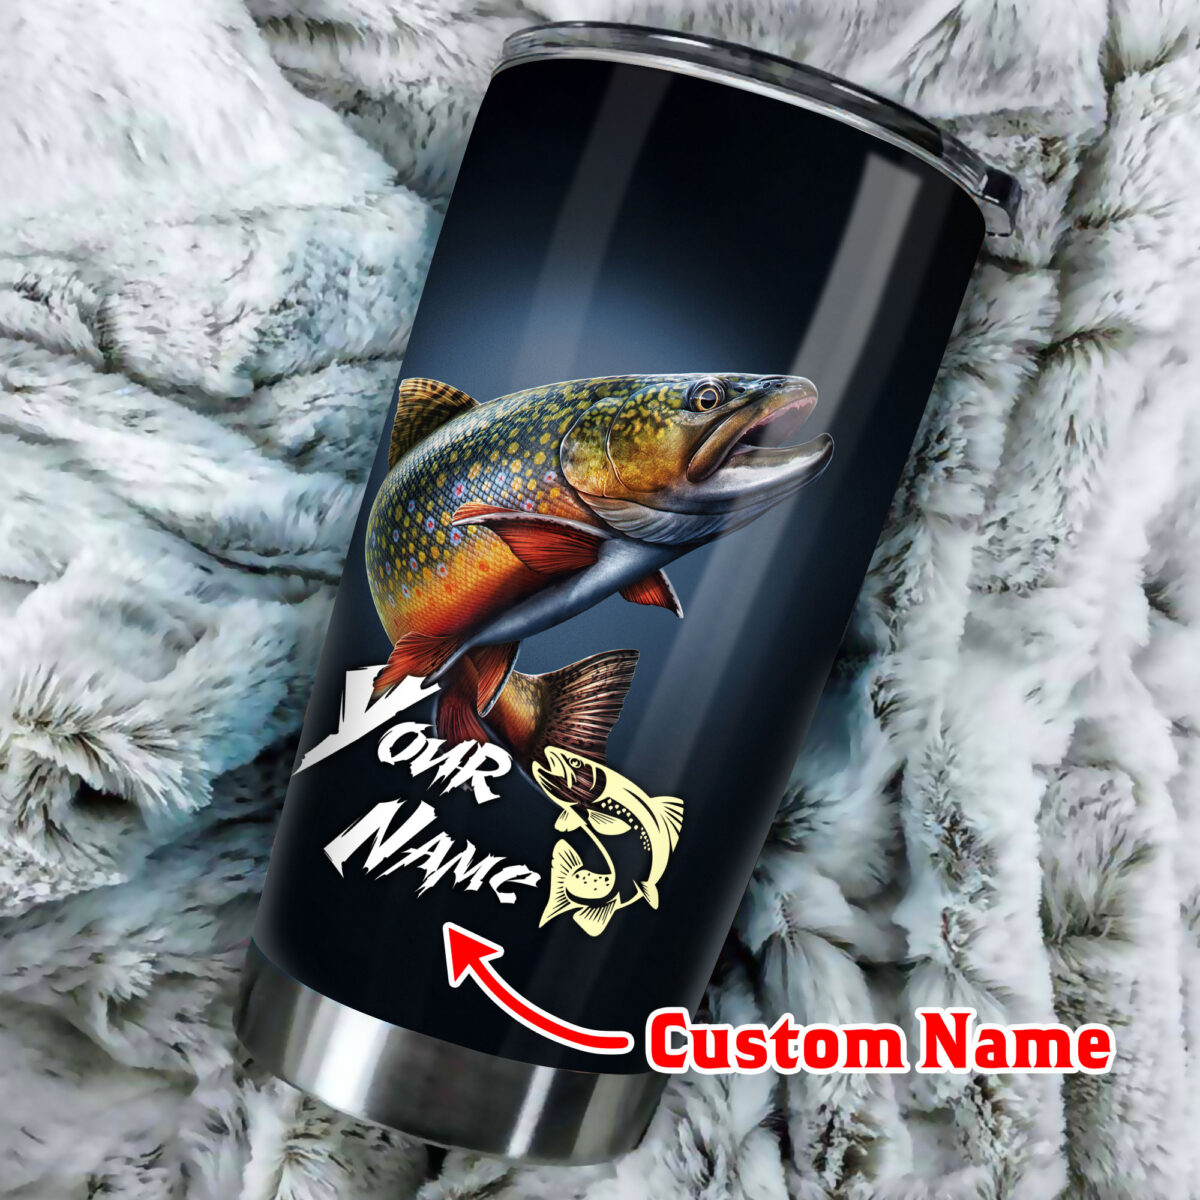 custom name trout fishing all over print stainless steel tumbler 5